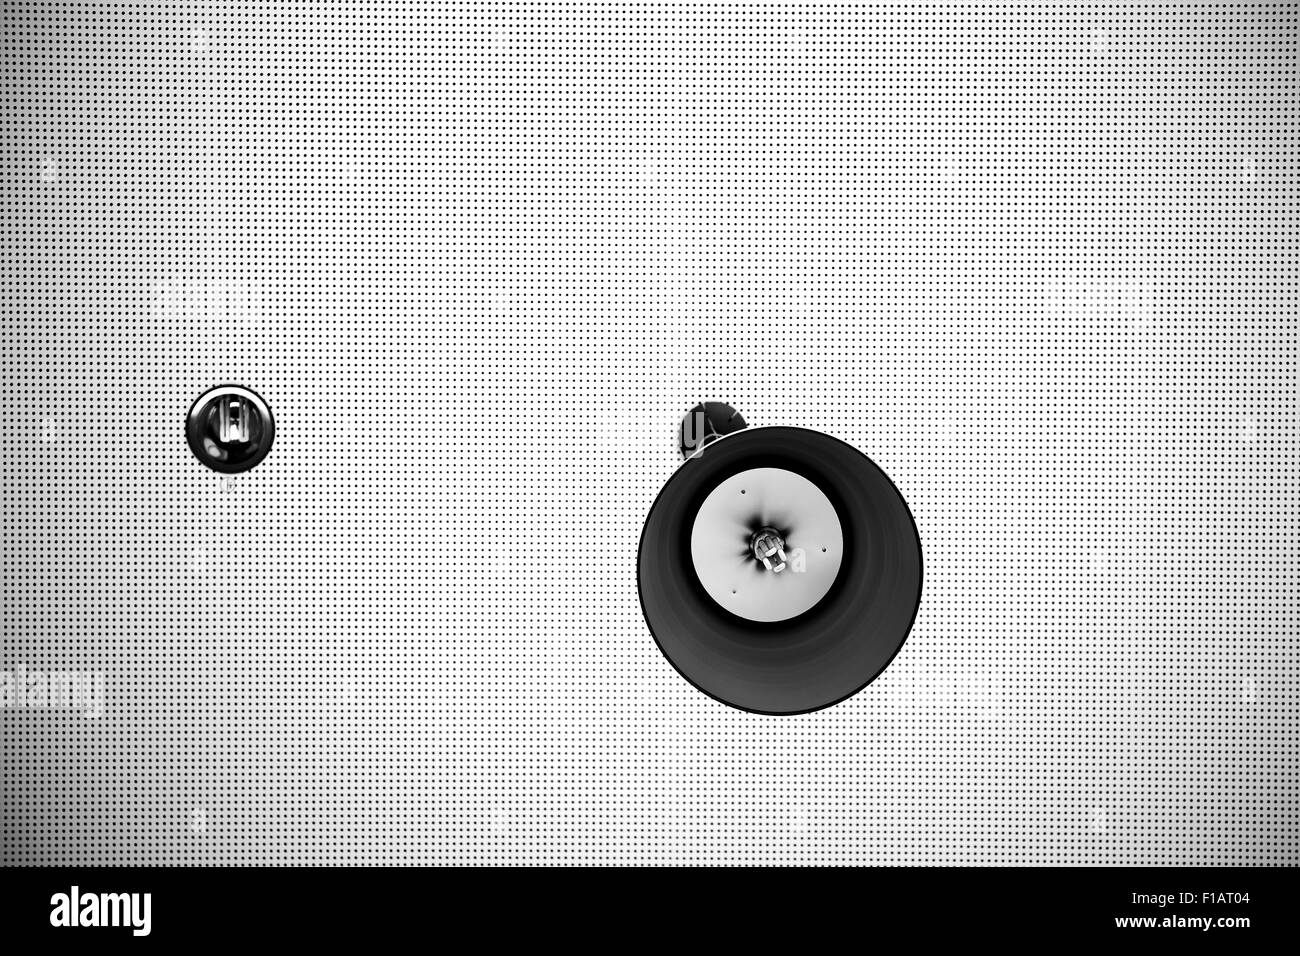 Ceiling panel with lamps - Stock Image